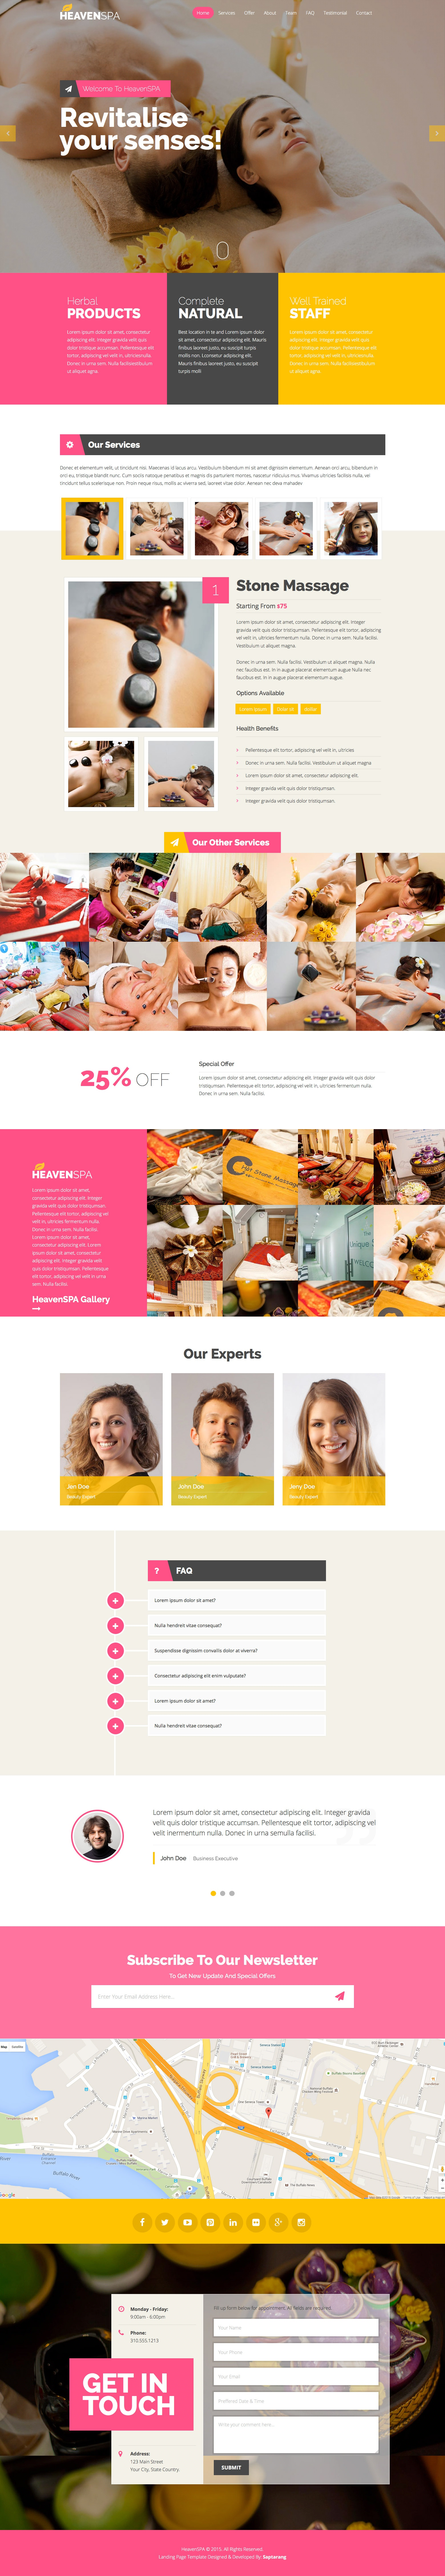 Product services landing page 01